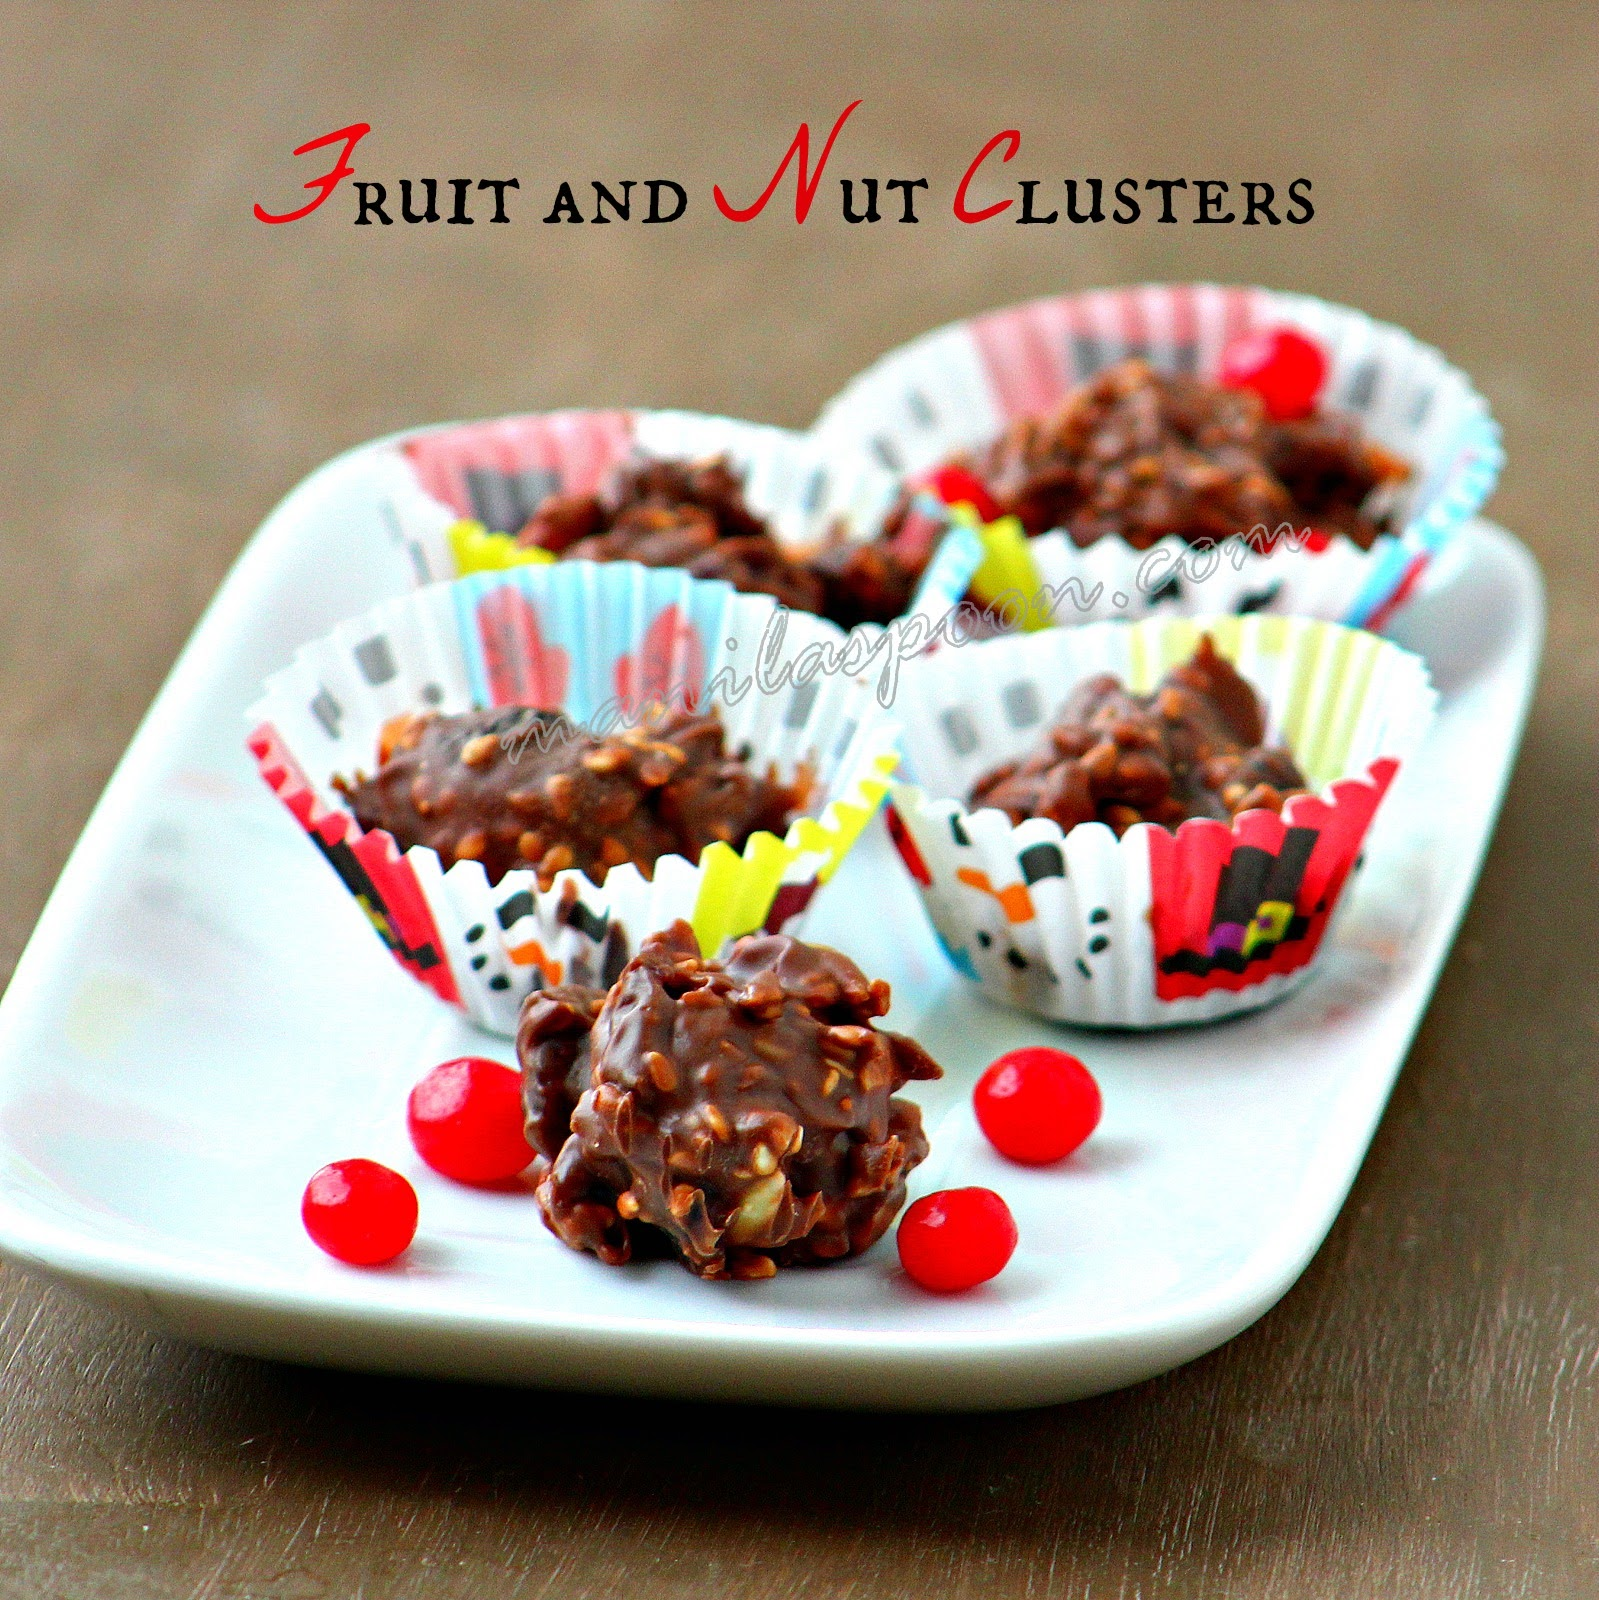 Holiday Fruit and Nut Clusters